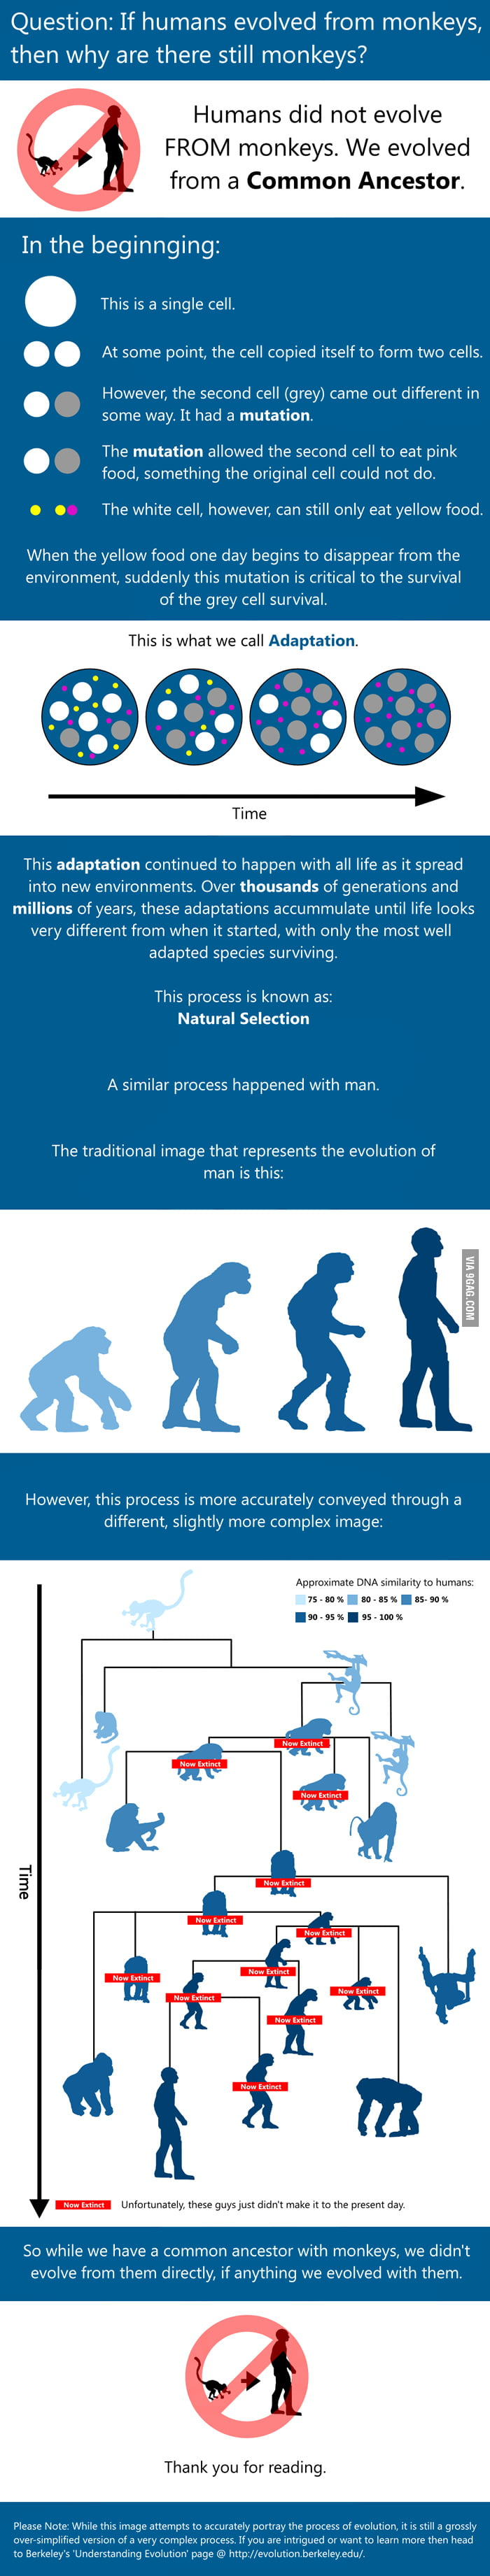 If We Humans Evolved From Apes Why Are Apes Still Here?